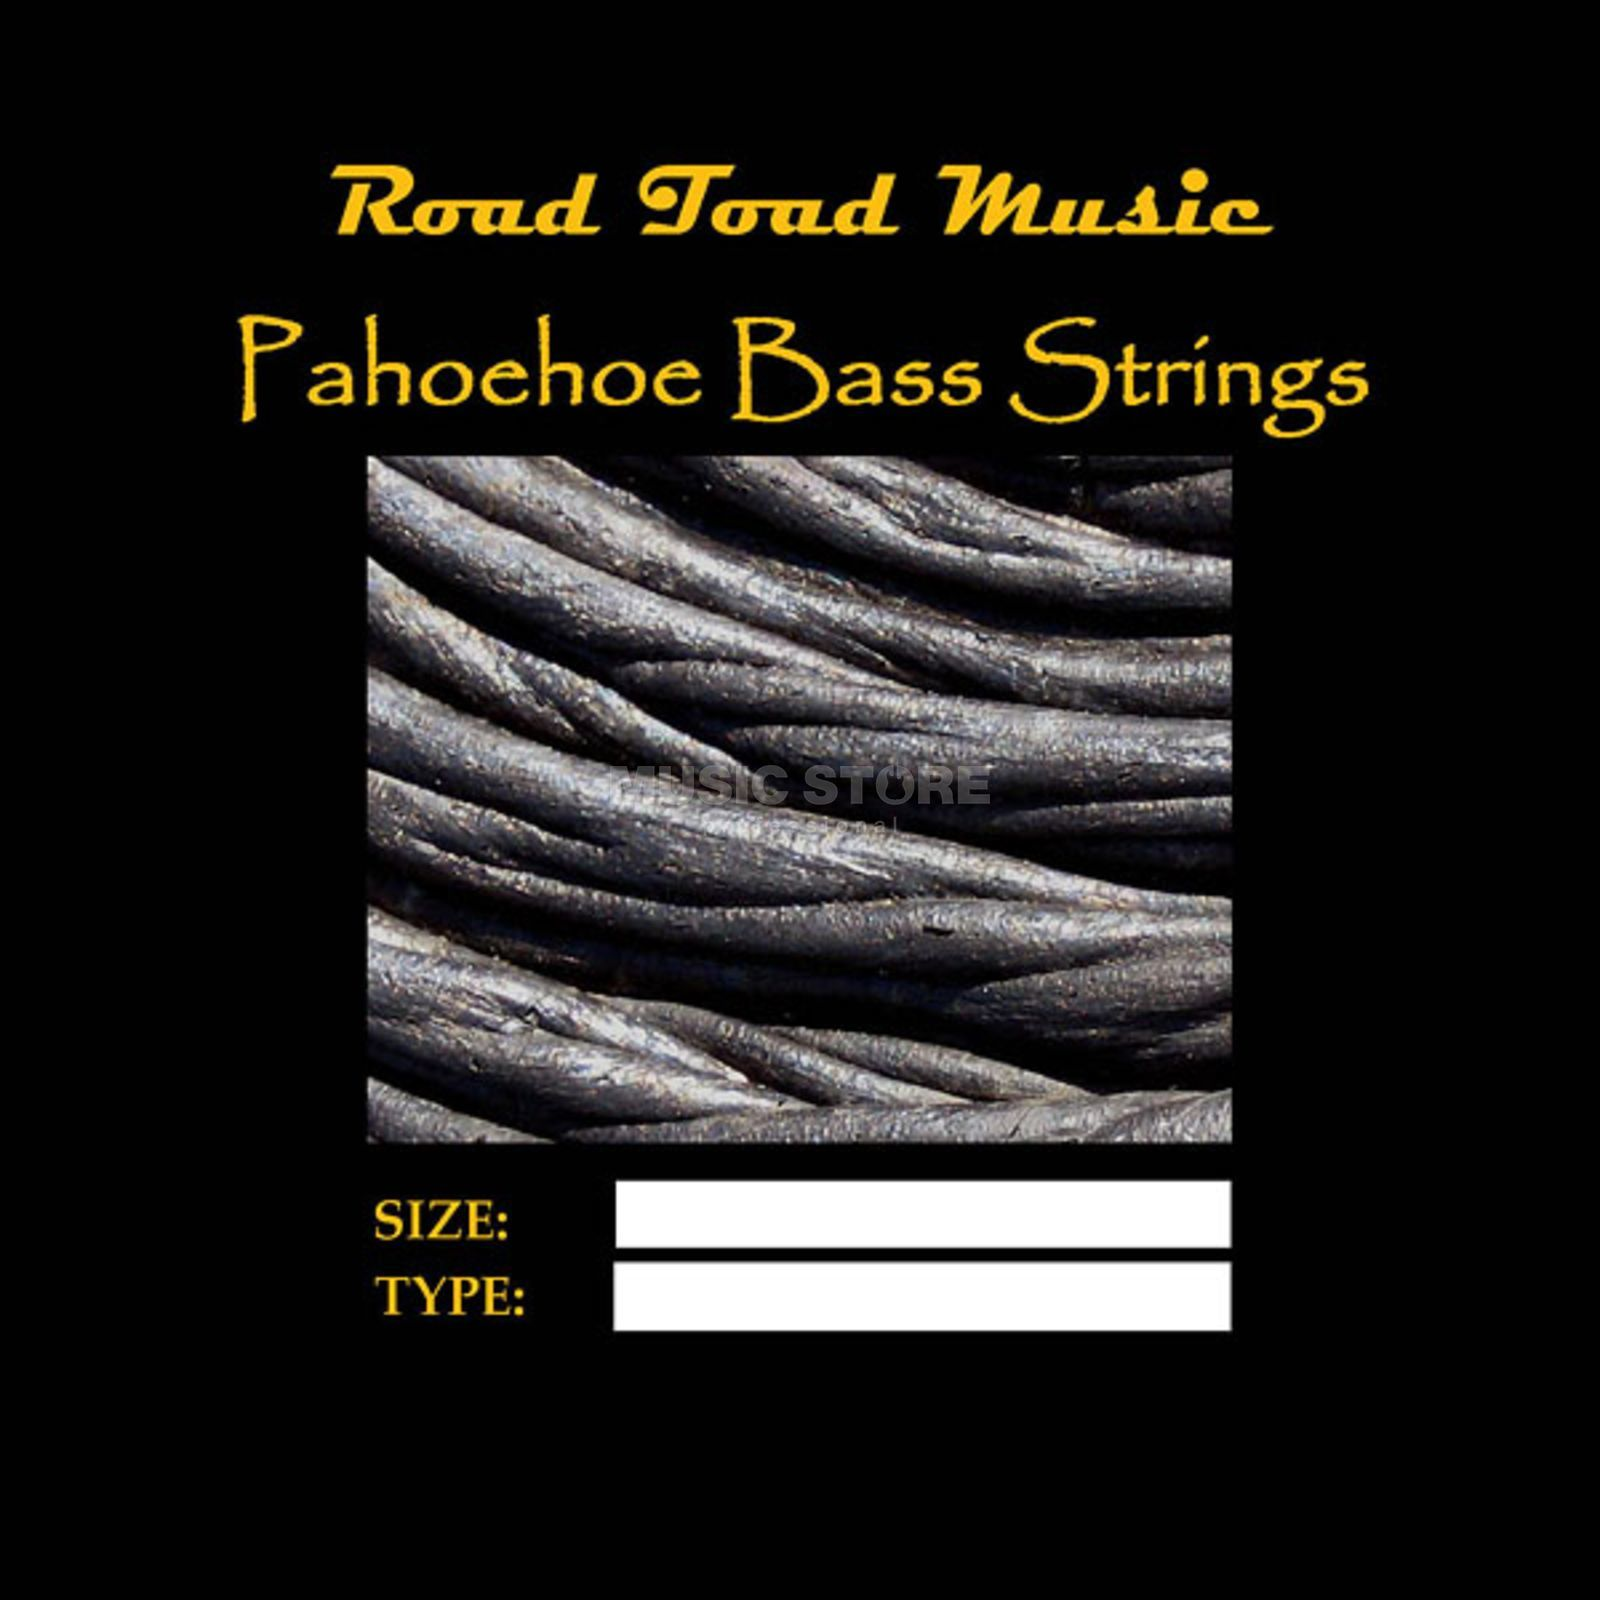 Road Toad Music U-Bass Pahoehoe Black 4-String  Zdjęcie produktu